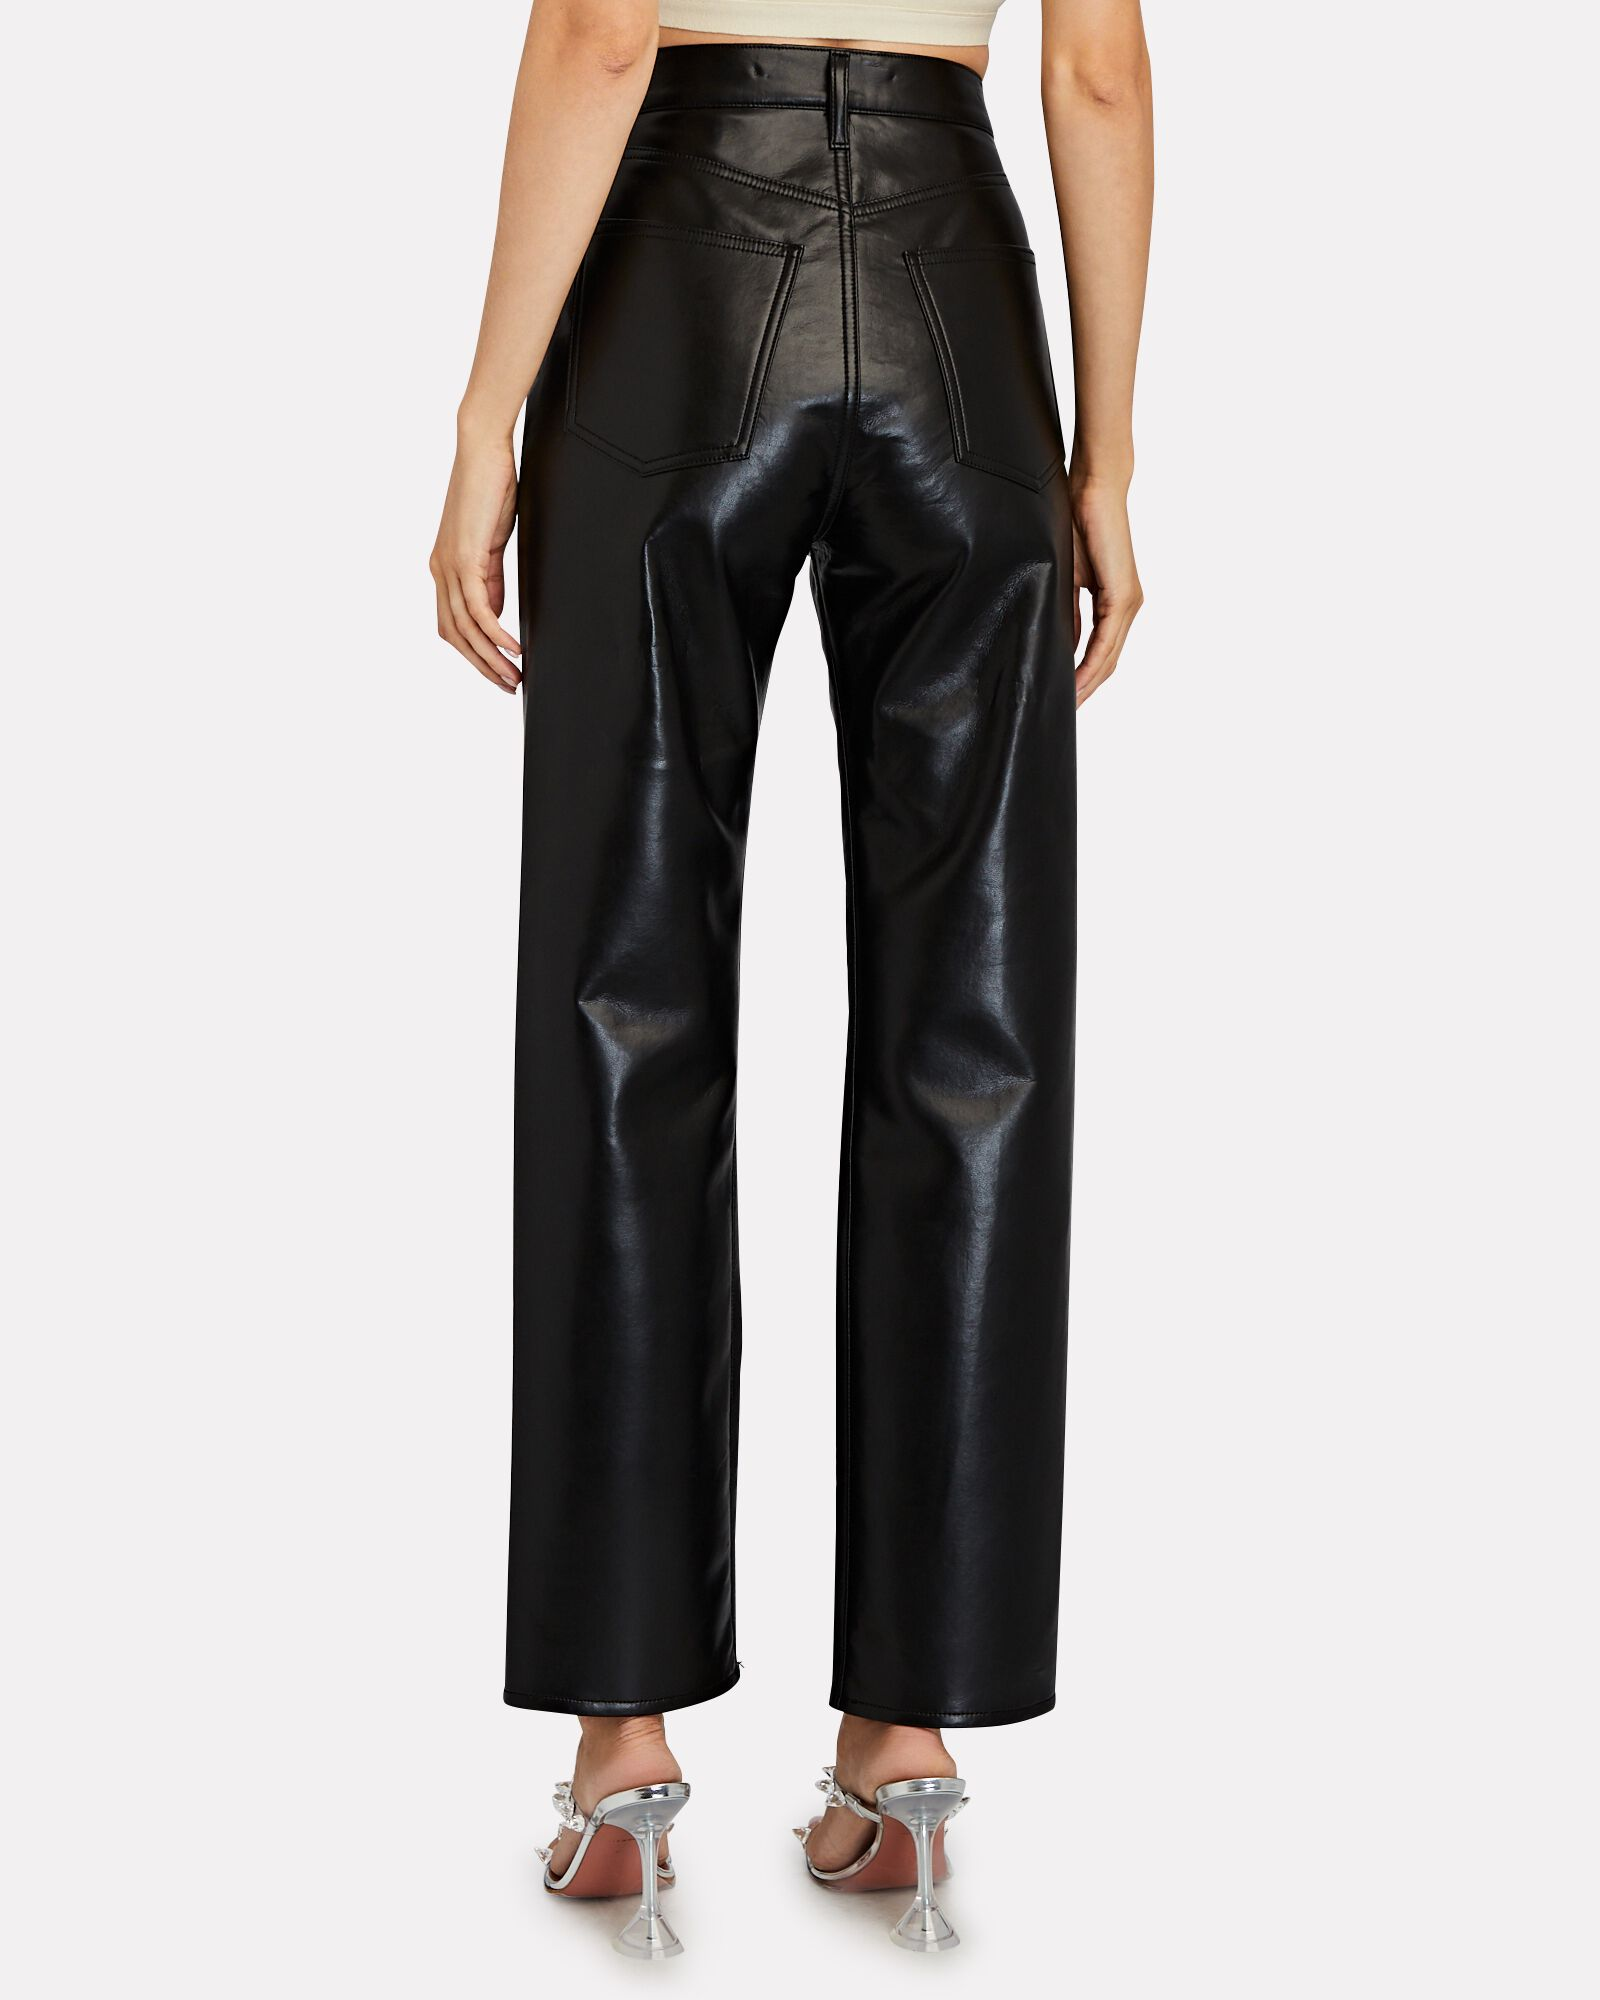 Fitted 90s Recycled Leather Pants, DETOX, hi-res